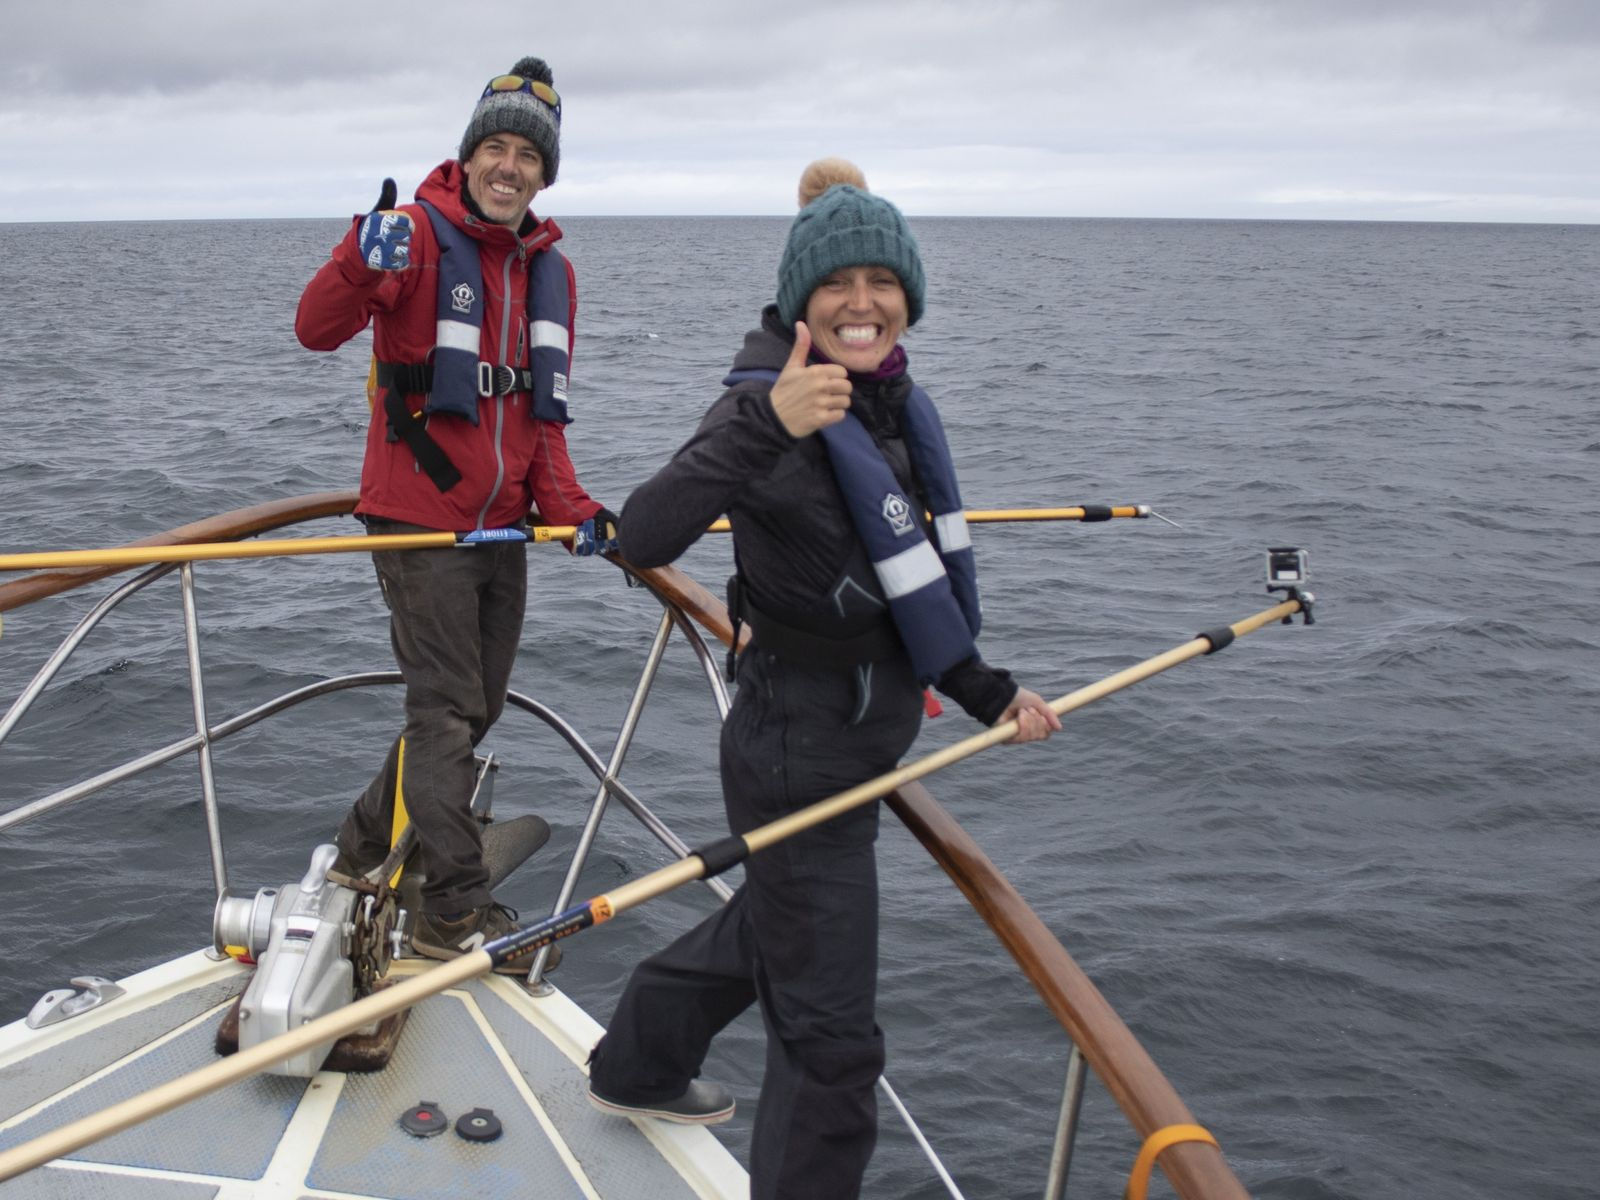 National Geographic Explorer Lucy Hawkes in action.